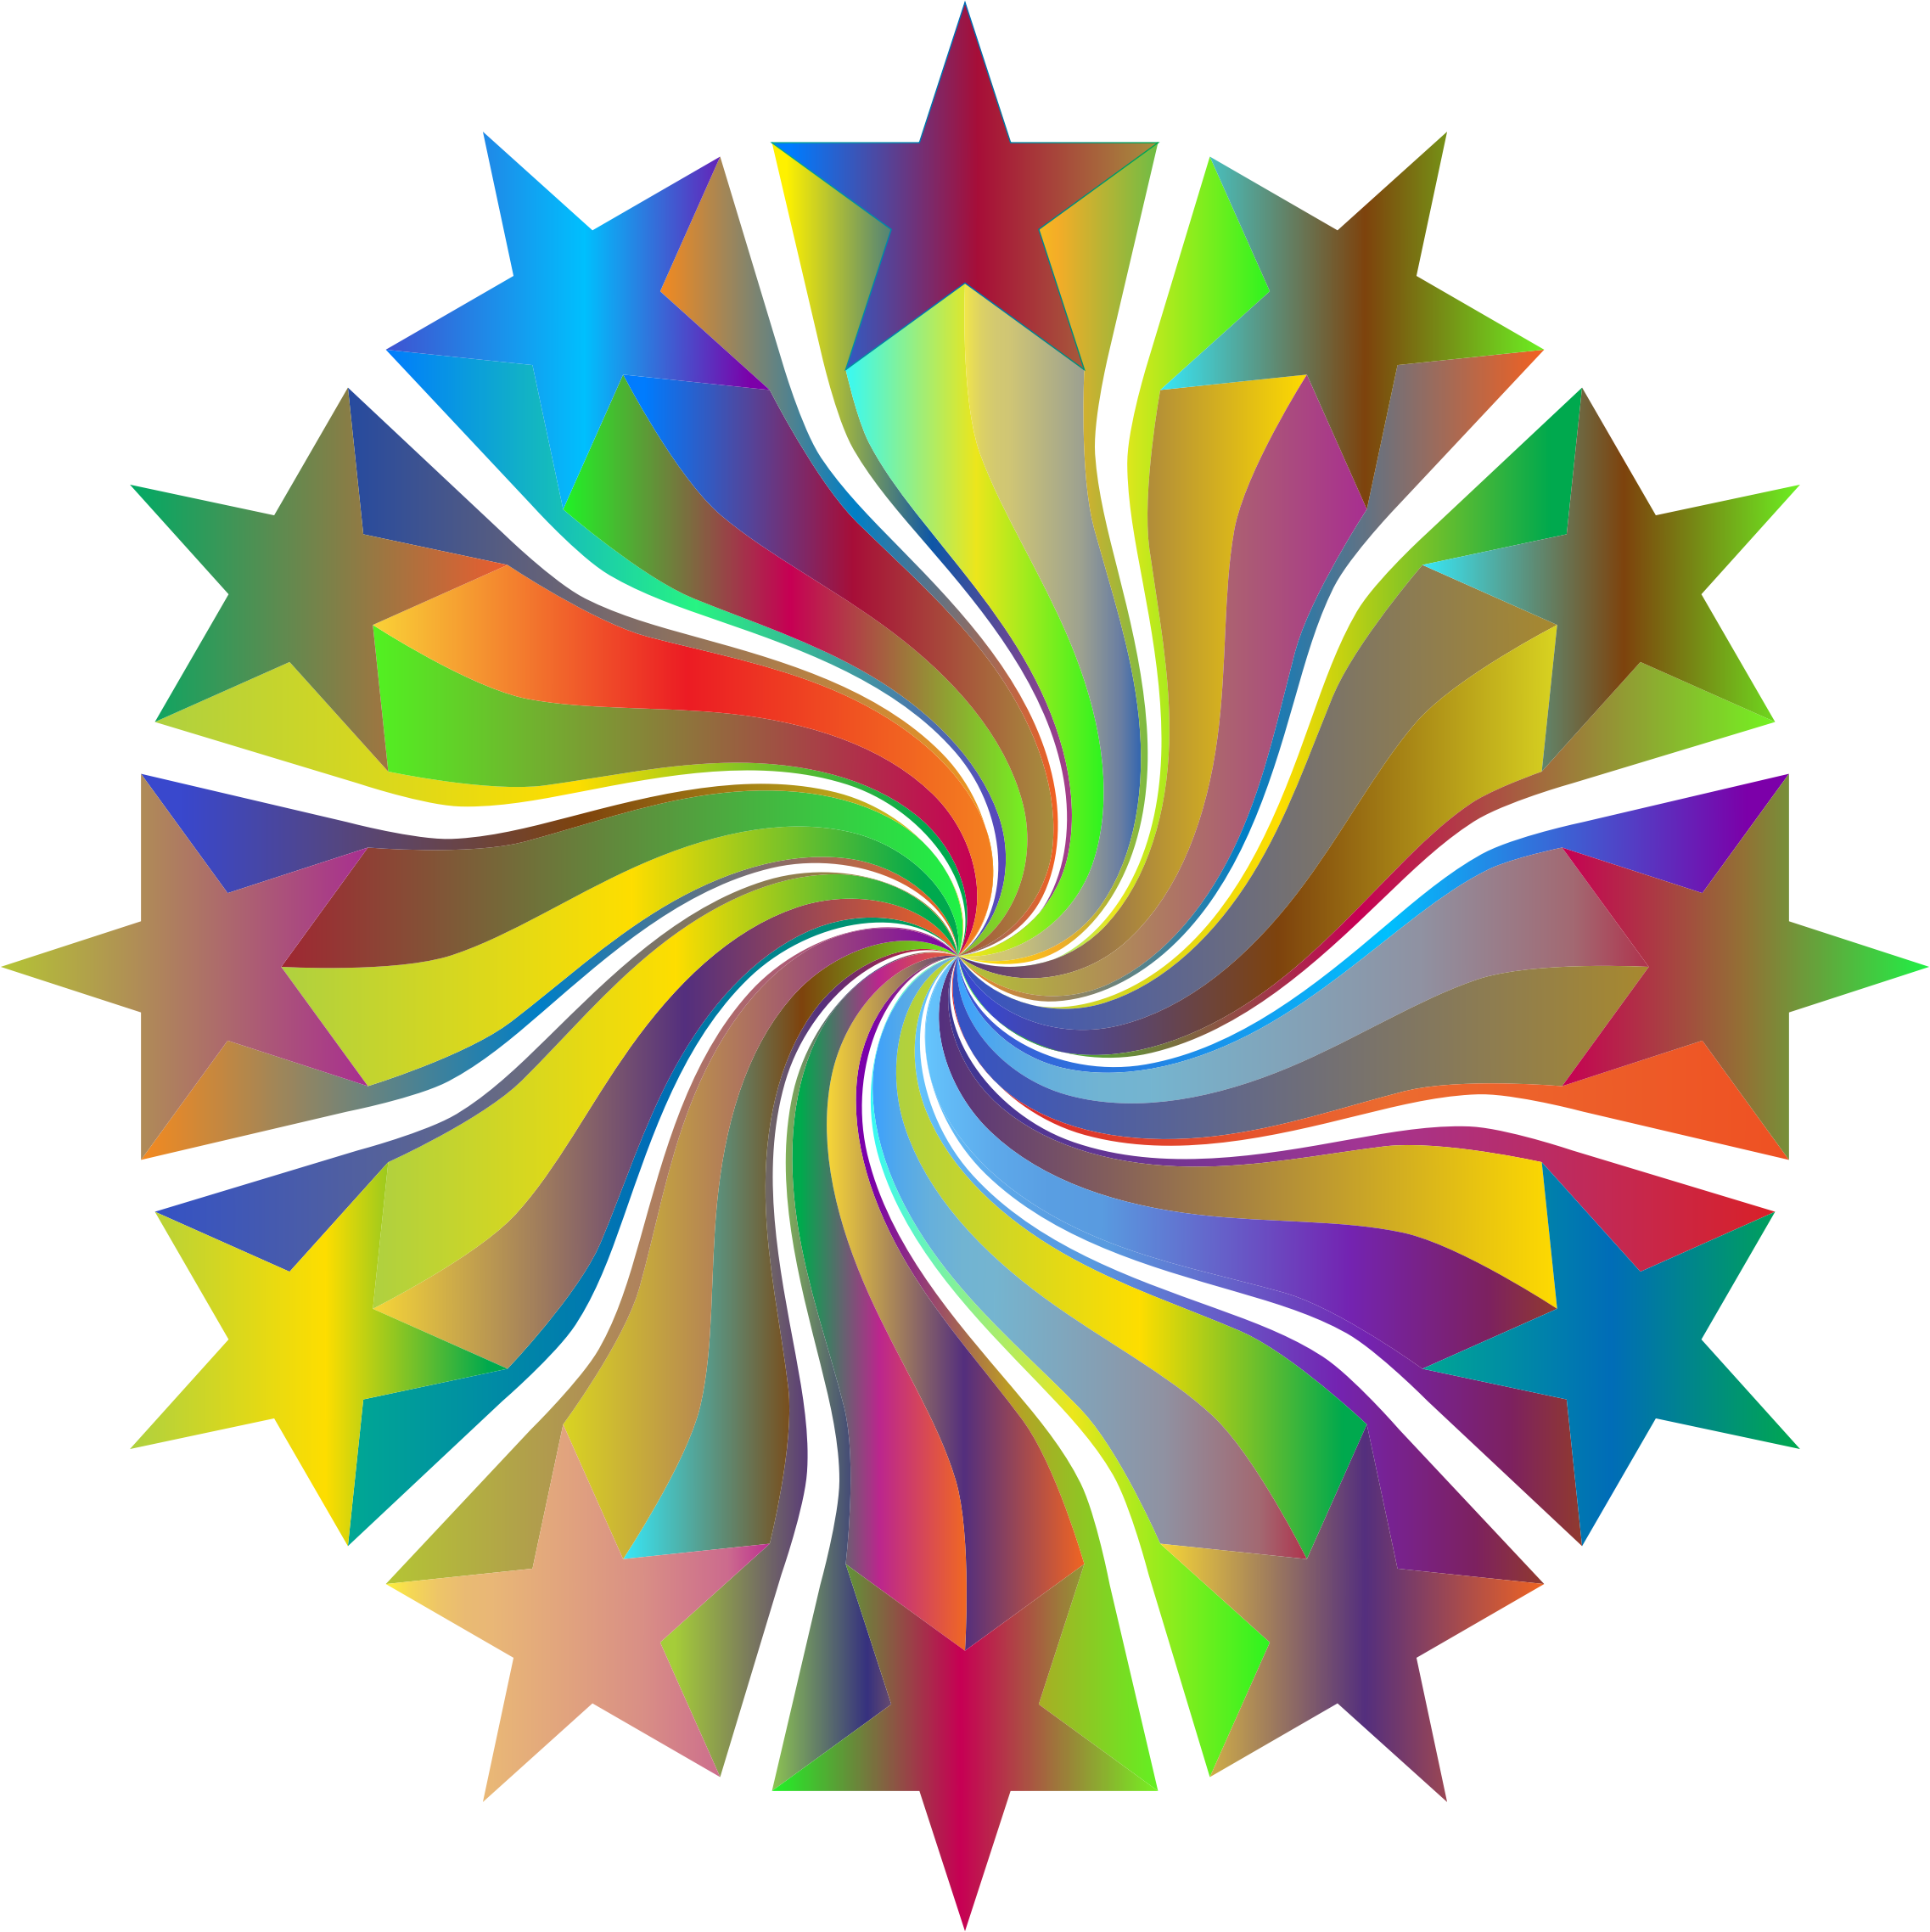 Prismatic Starburst Vortex 3 by GDJ